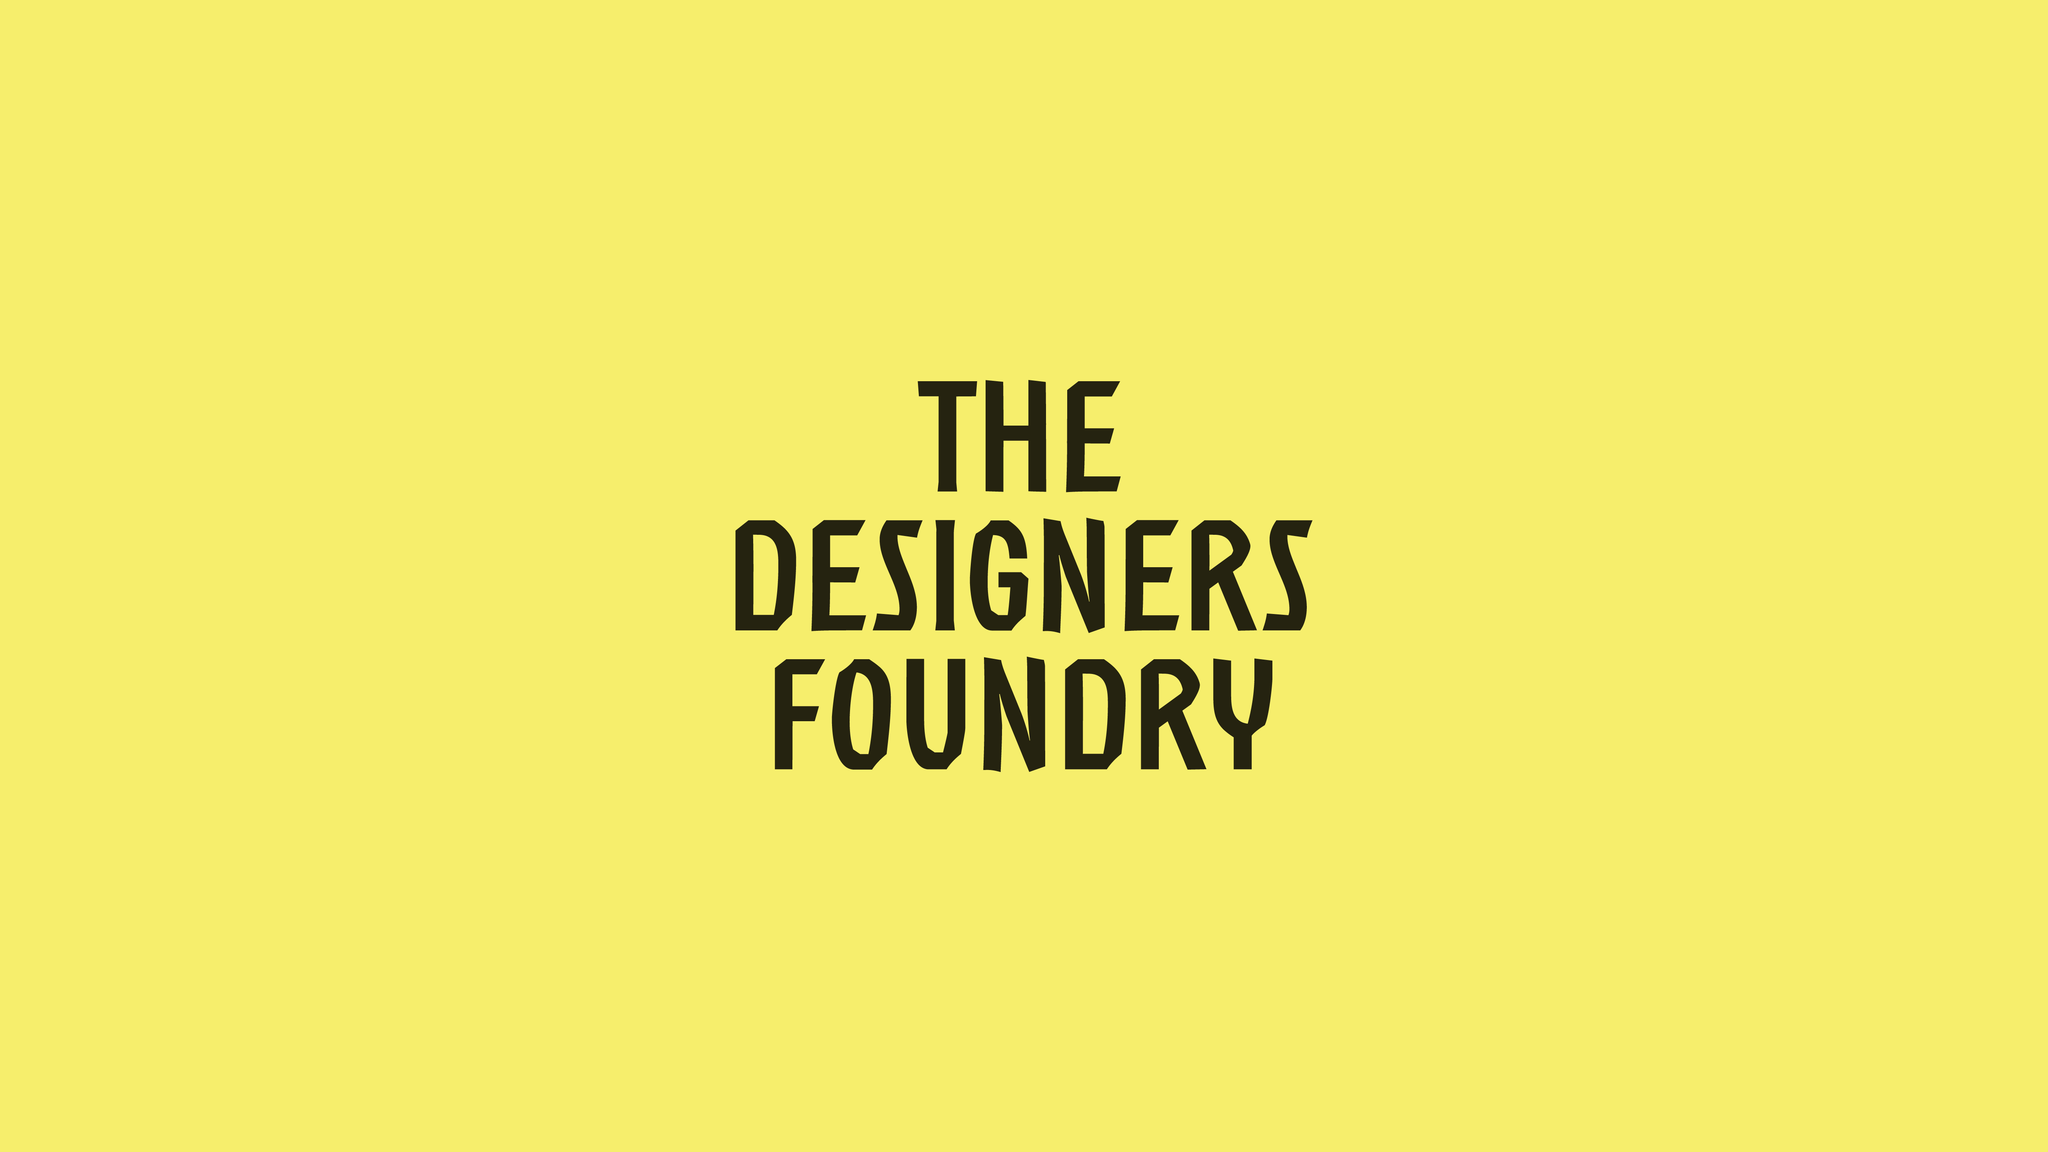 The Designers Foundry